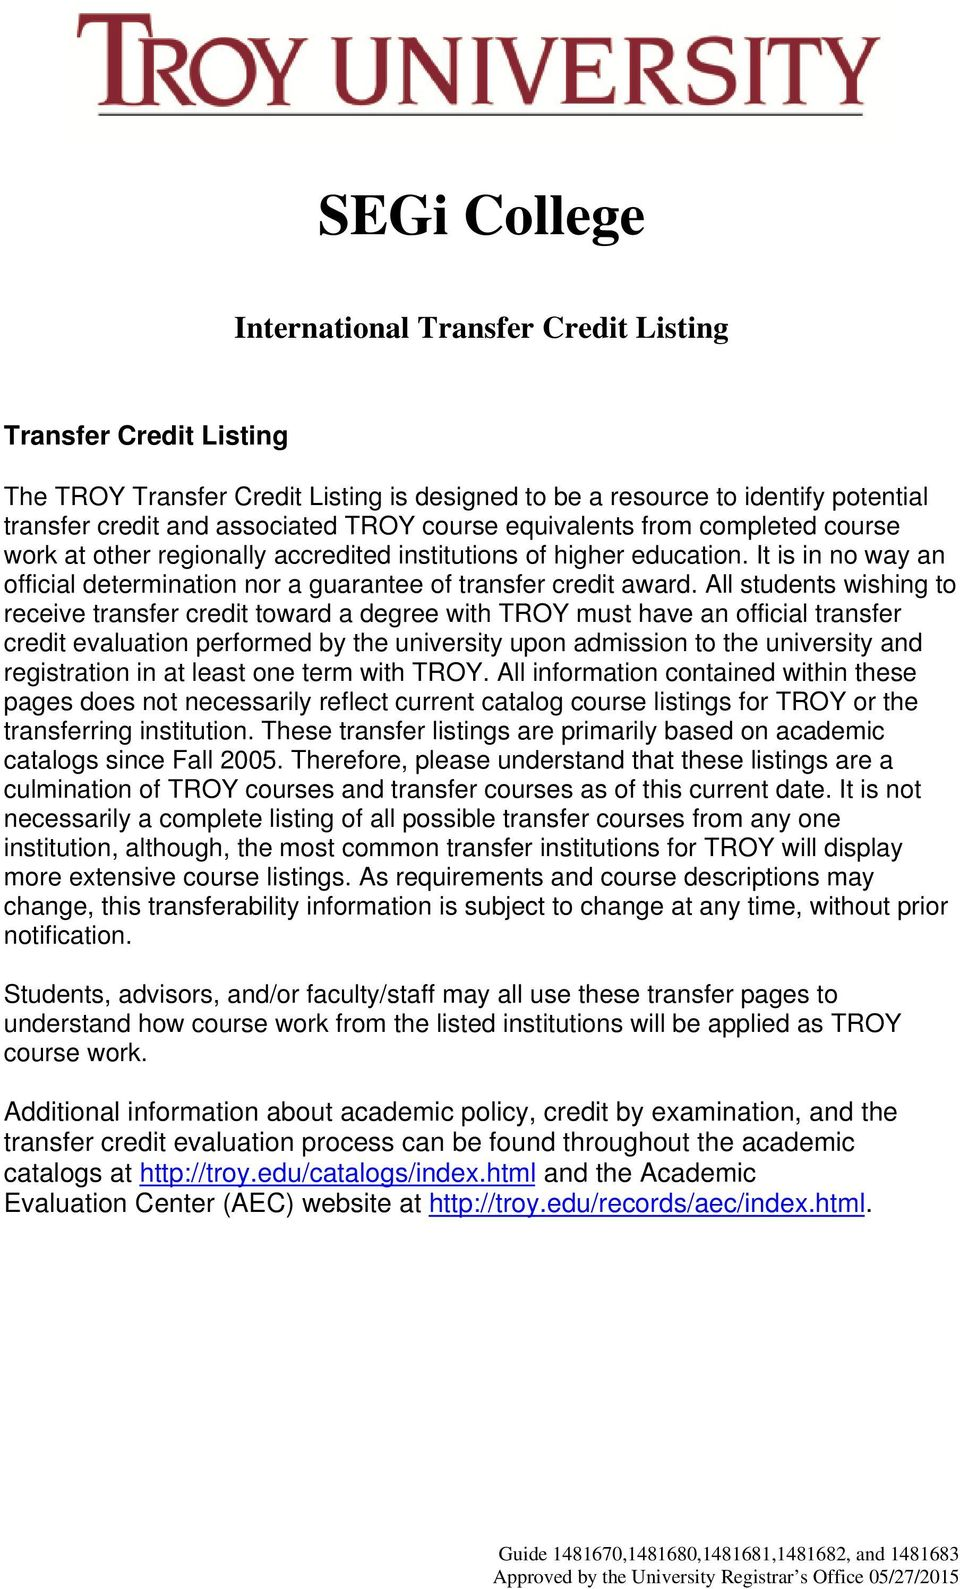 All students wishing to receive transfer credit toward a degree with TROY must have an official transfer credit evaluation performed by the university upon admission to the university and